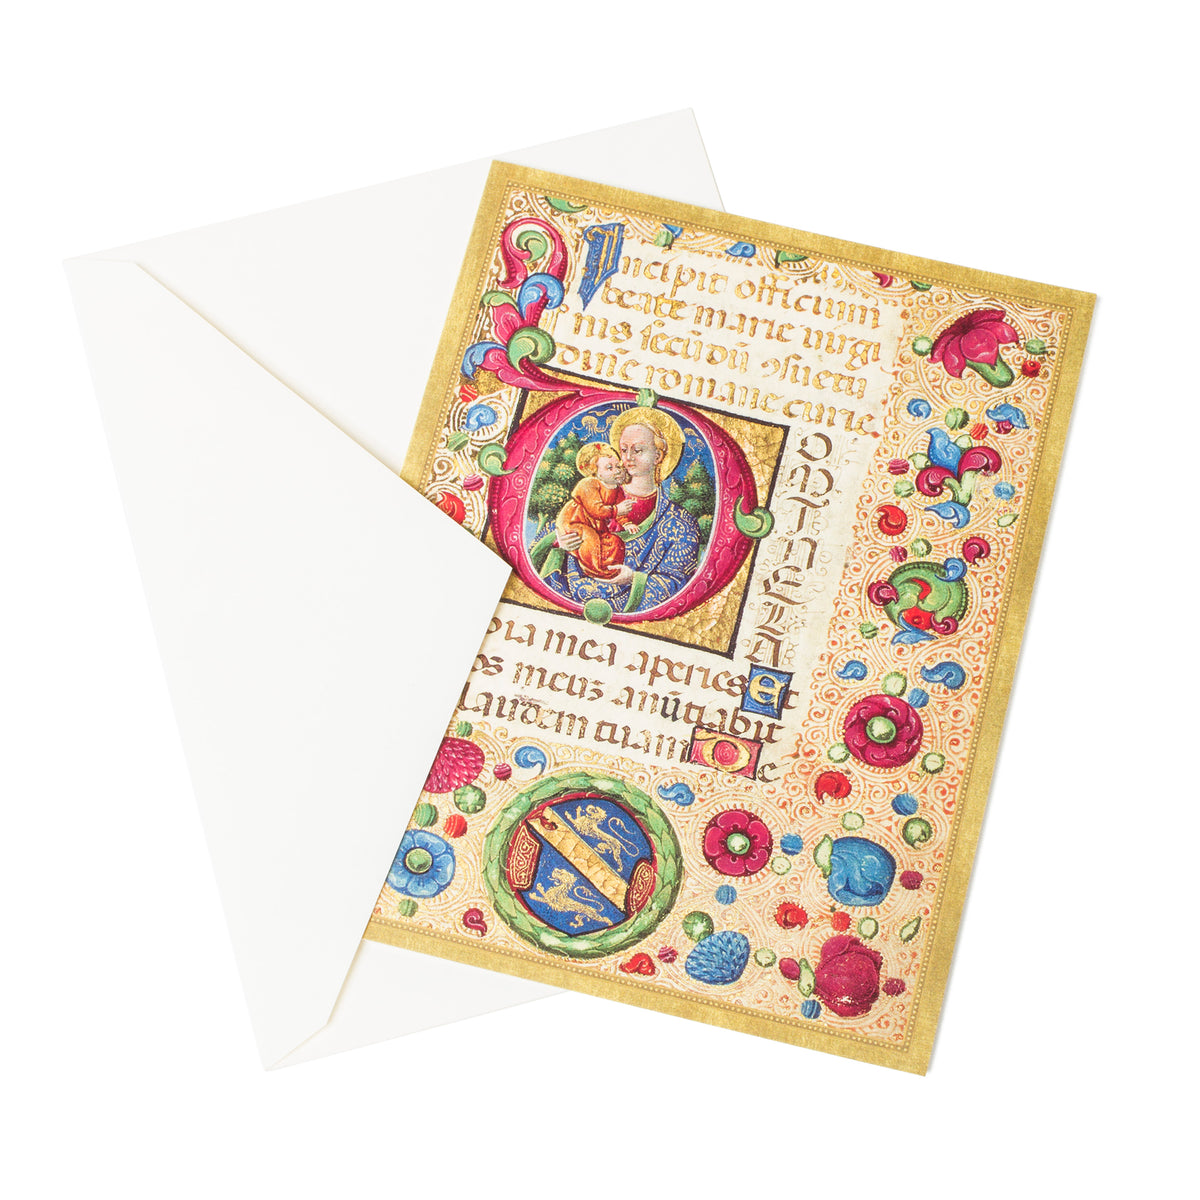 Getty Boxed Christmas Cards-Virgin and Child, view of card with white envelope | Getty Store